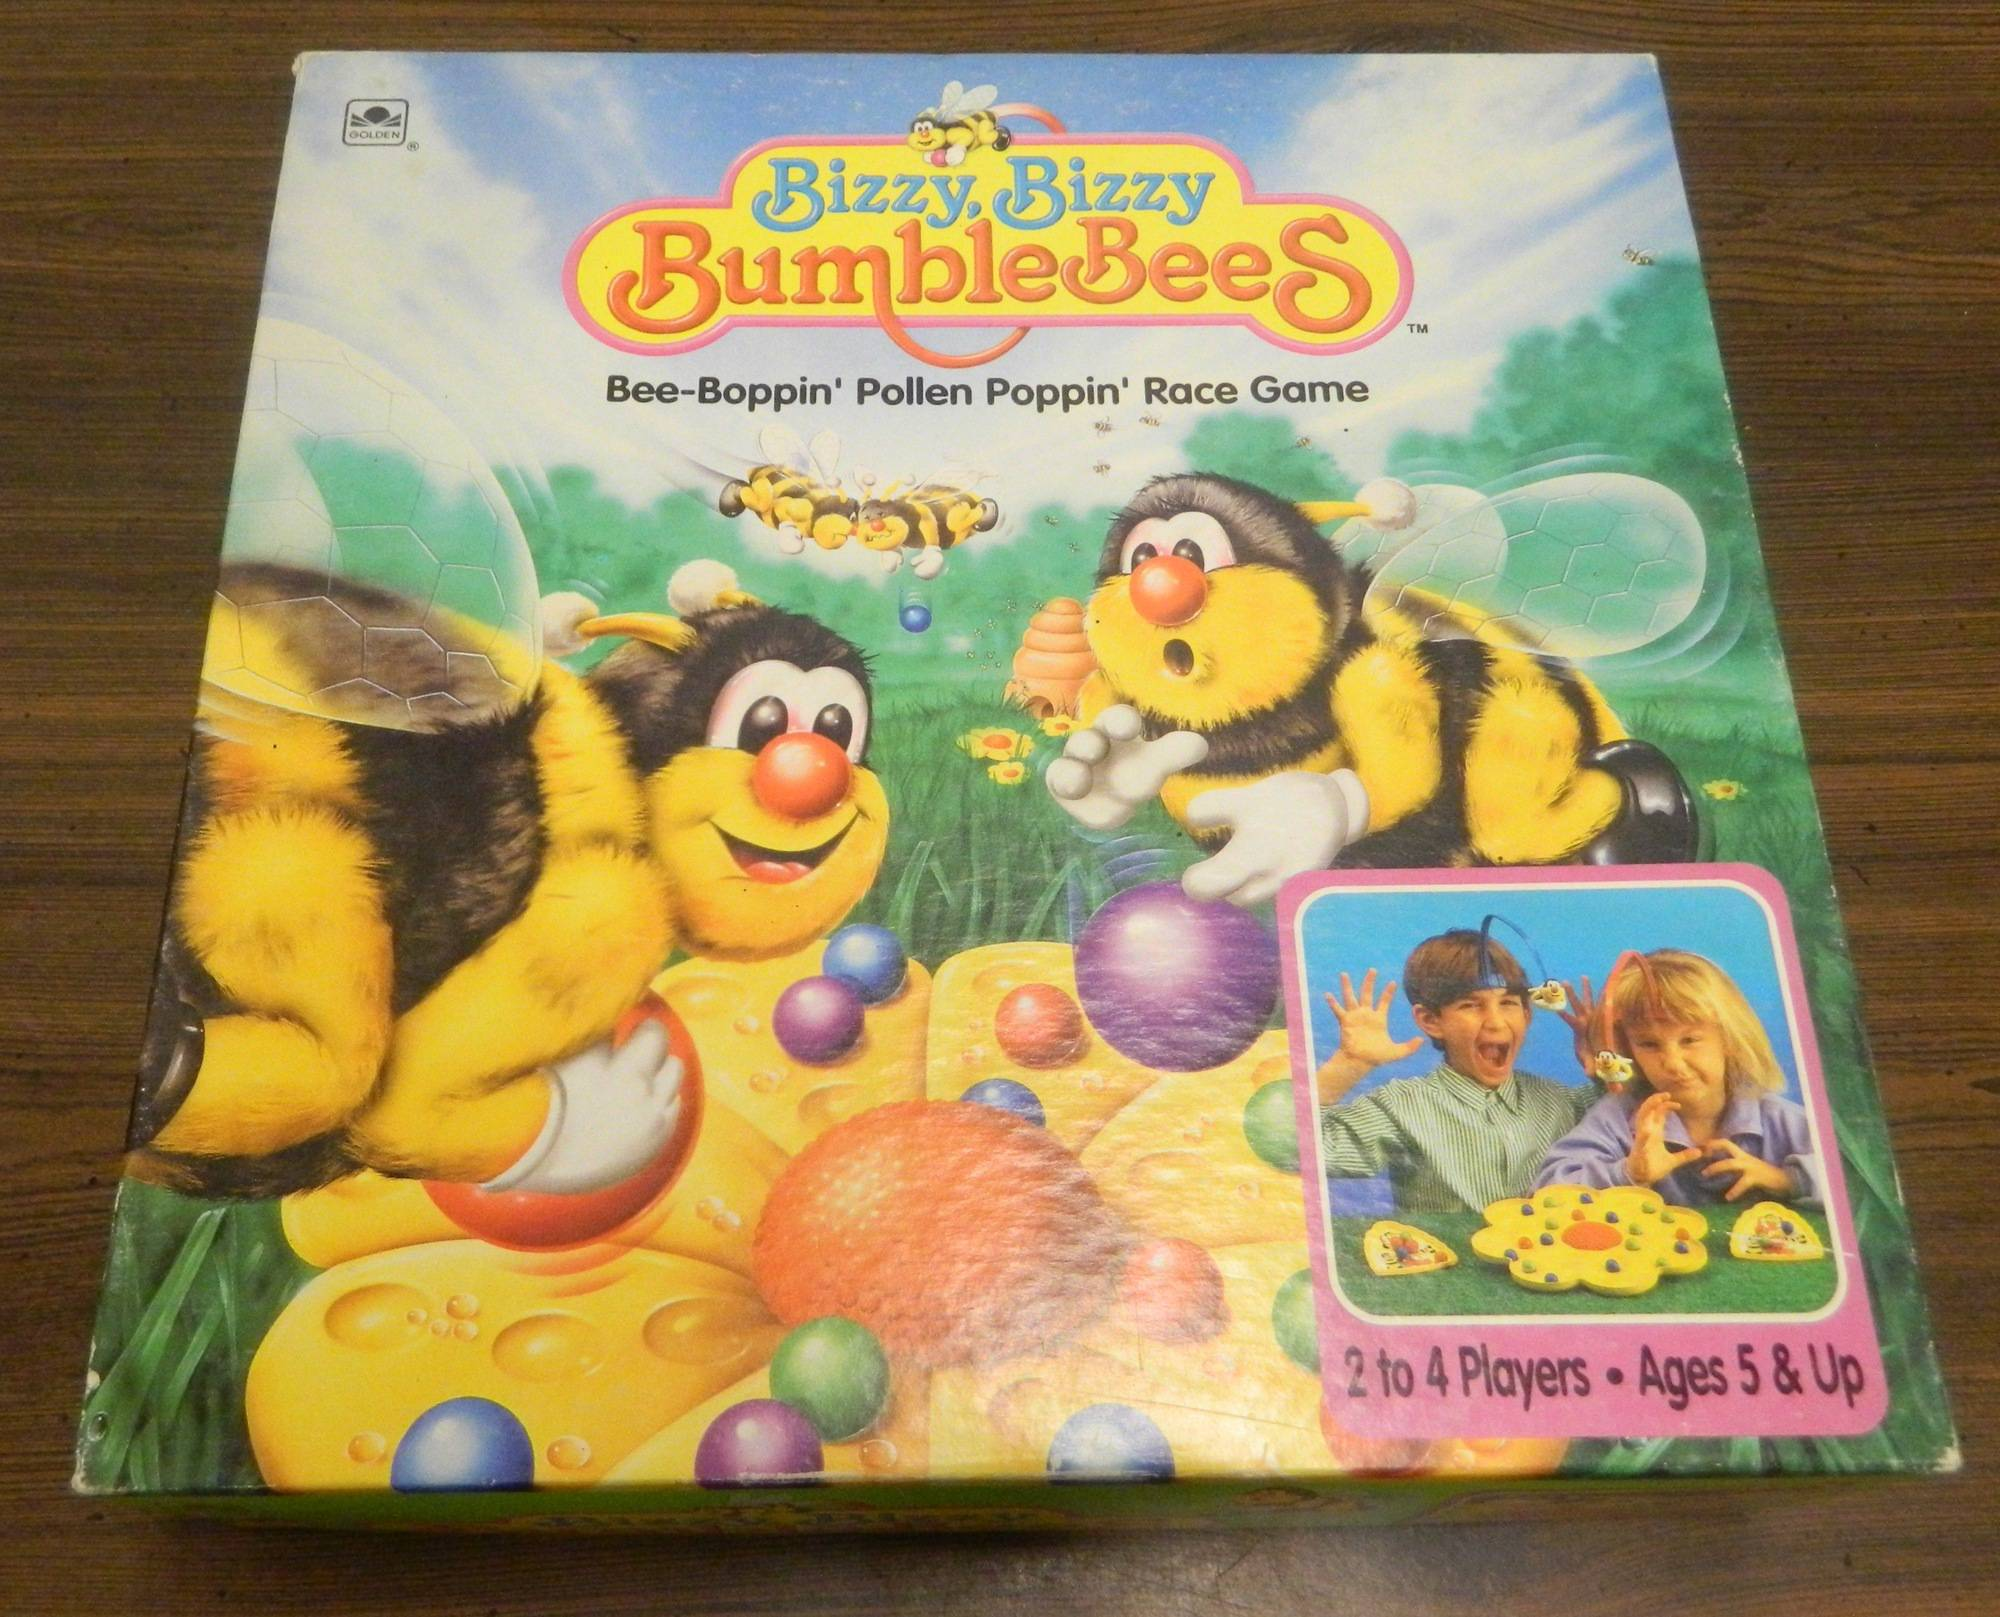 Box for Bizzy, Bizzy Bumblebees